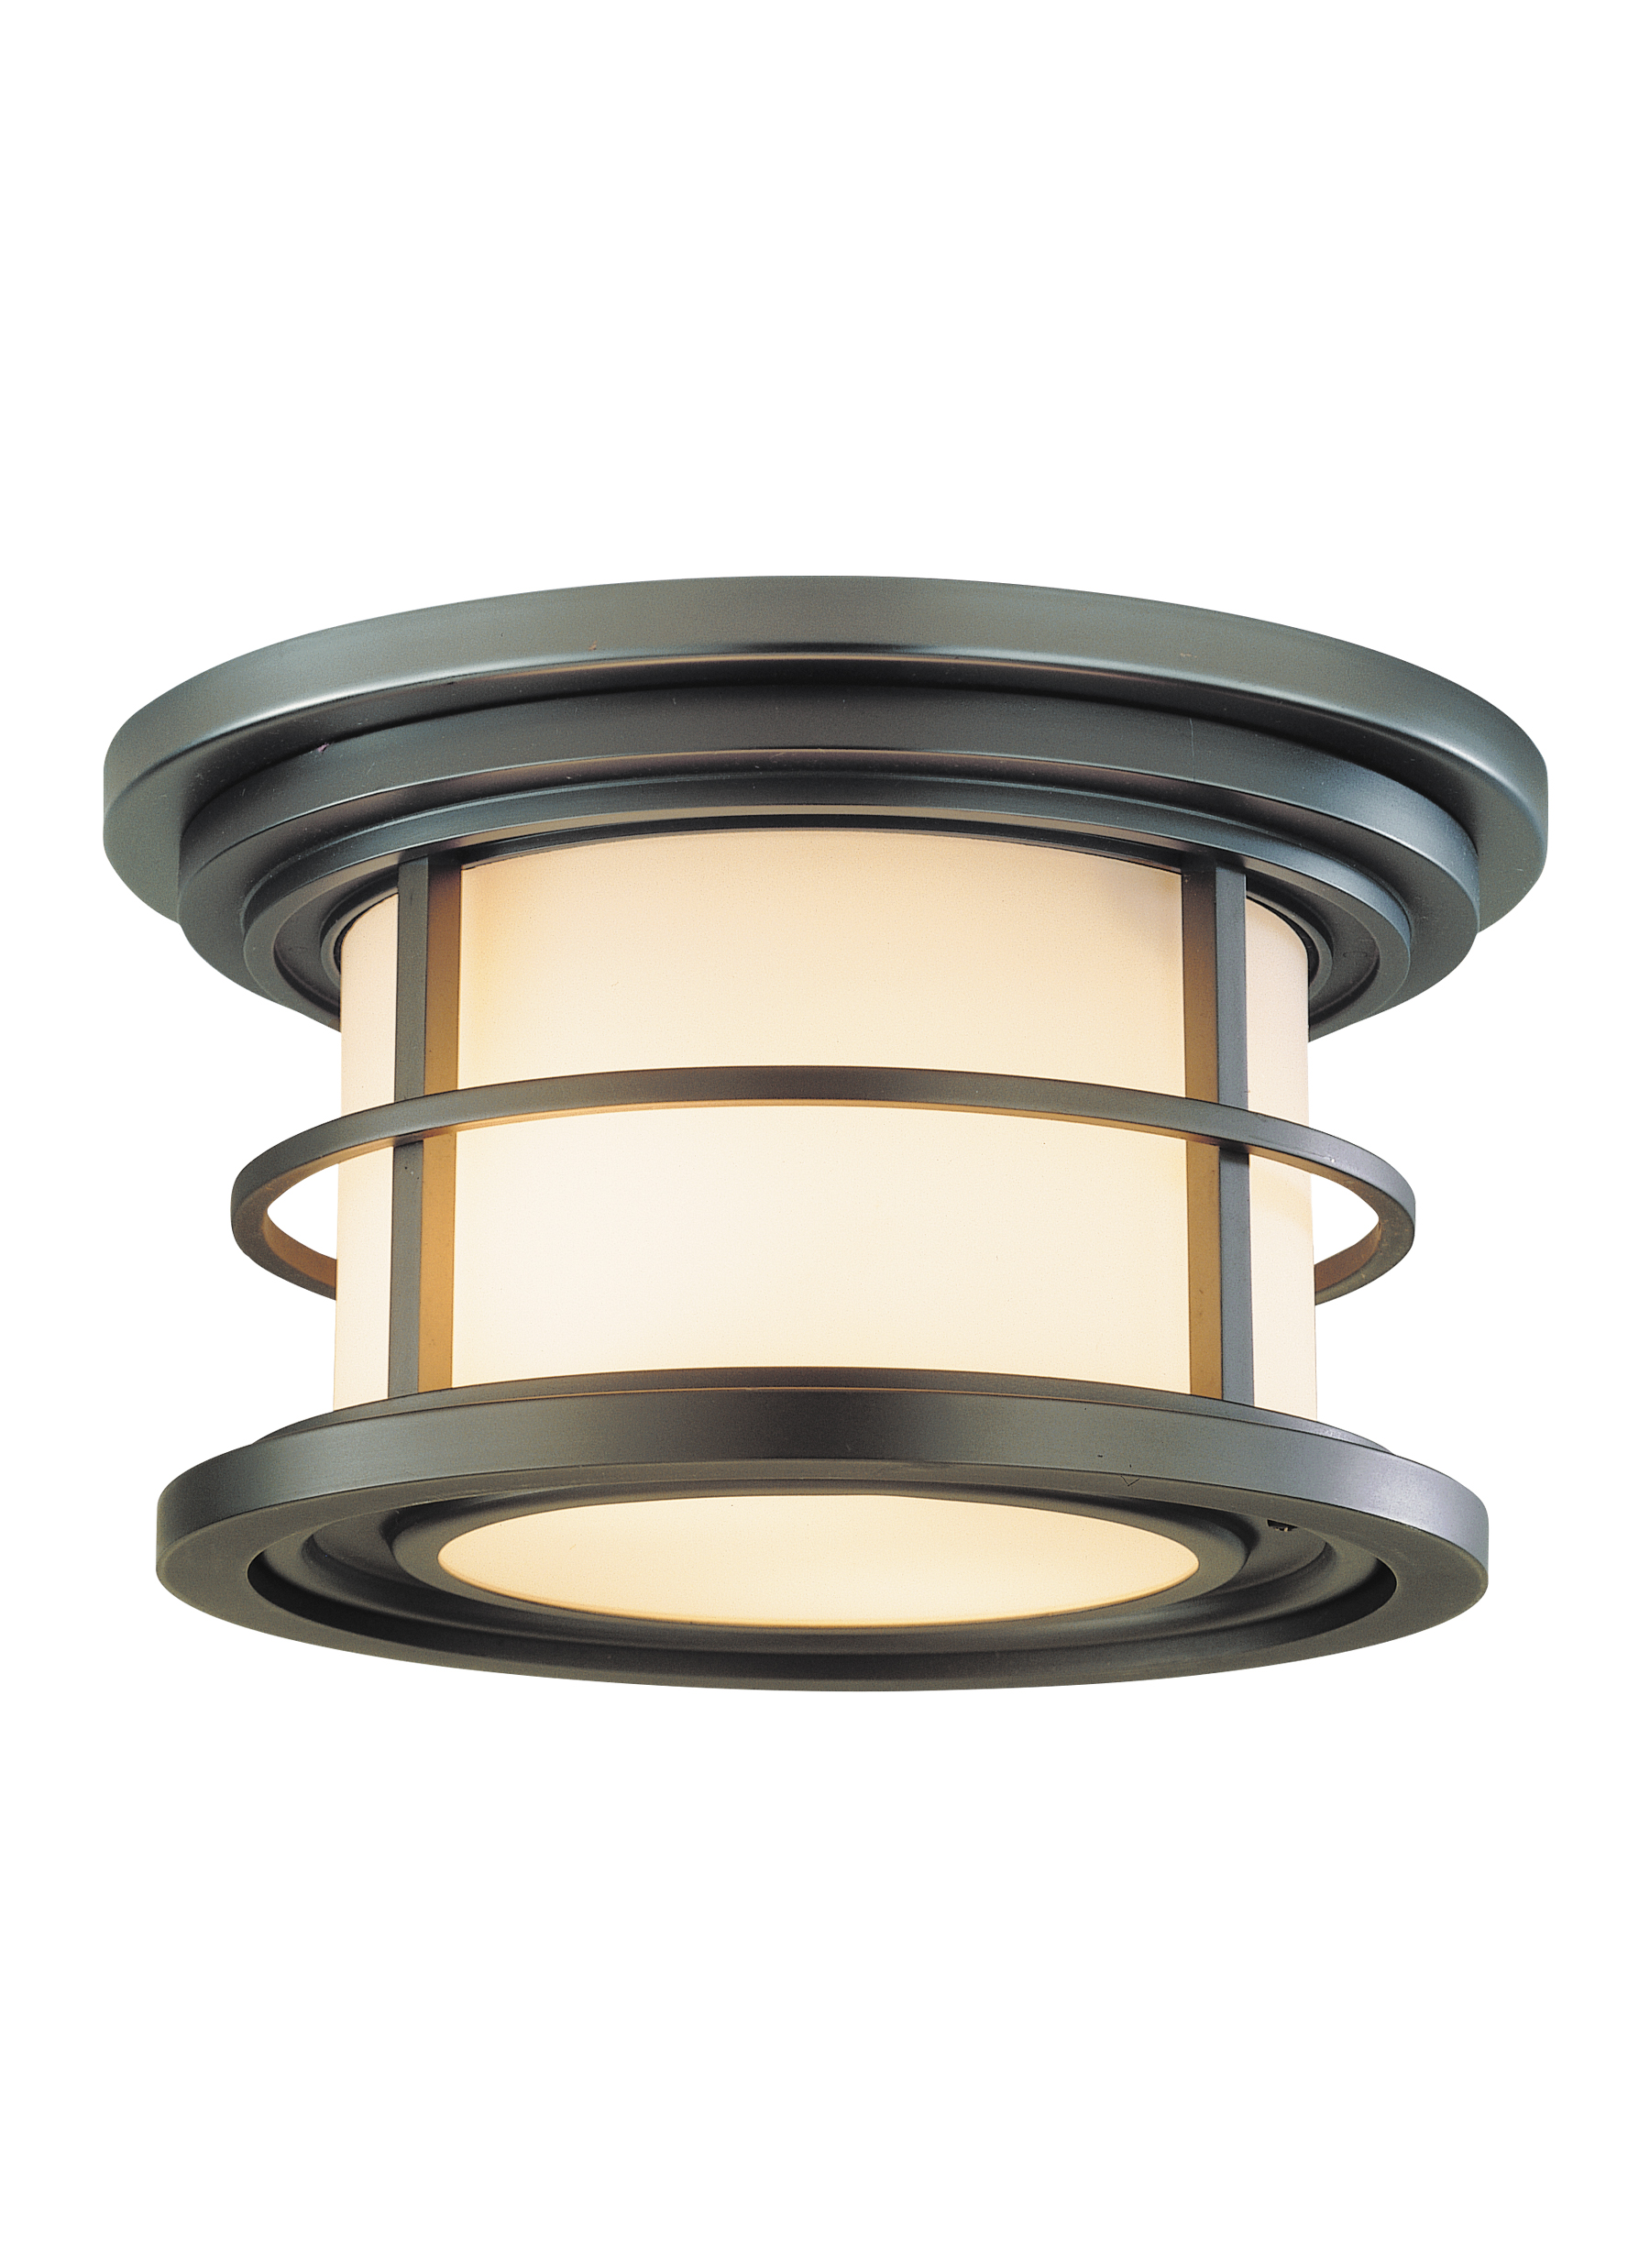 ol2213bb 2 light ceiling fixture burnished bronze